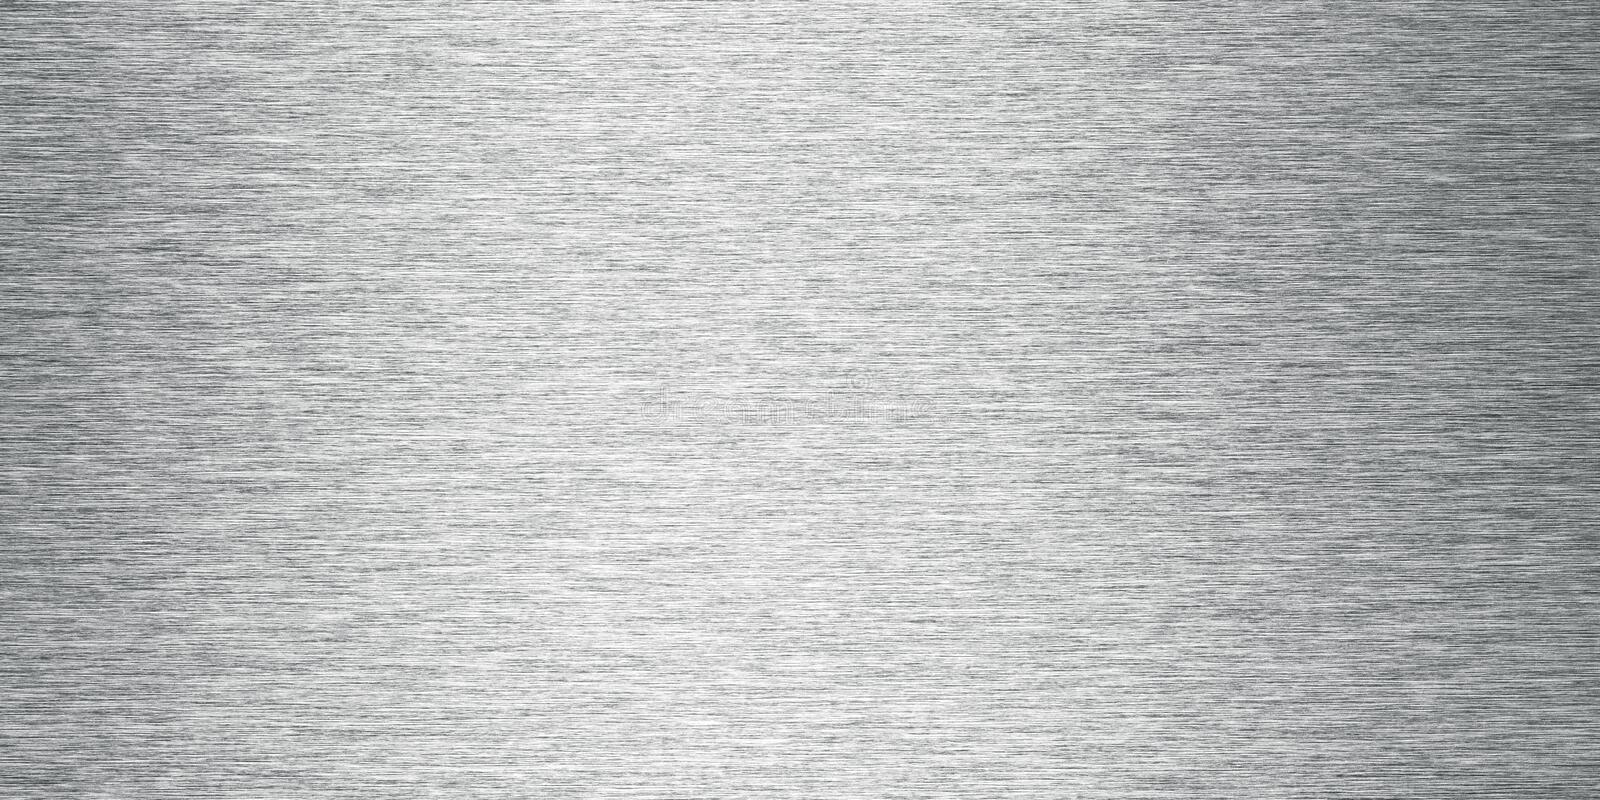 Silver Brushed Metal Background Banner stock image